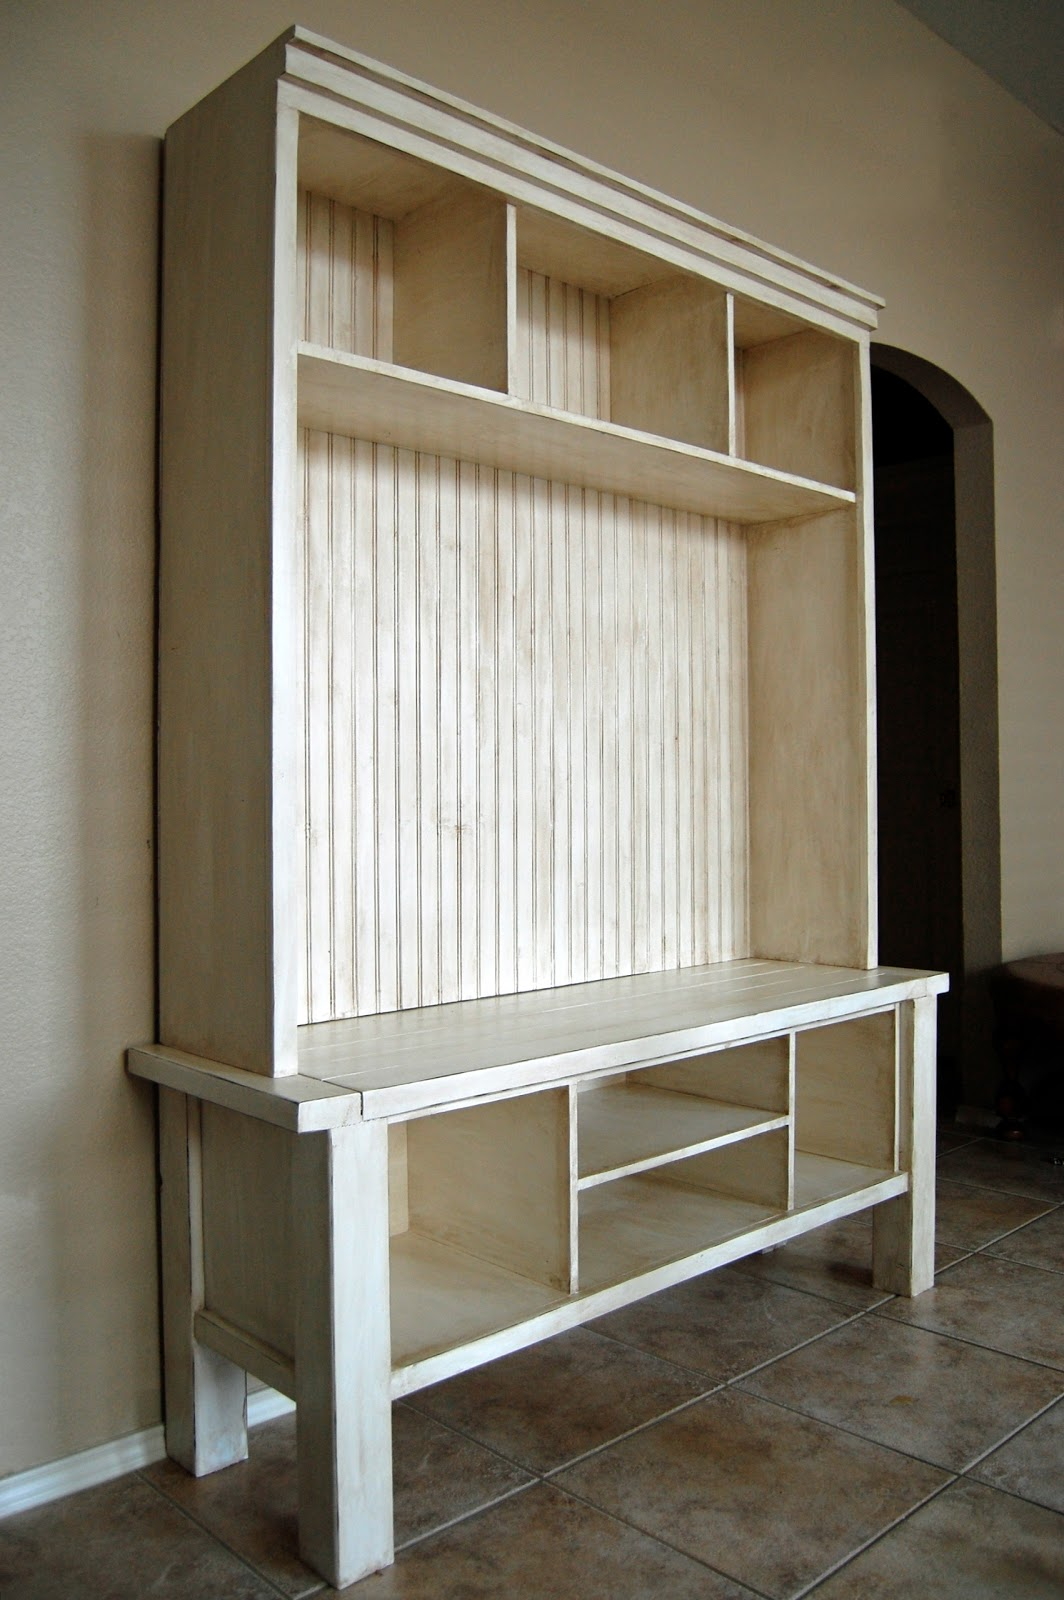 Creative ideas for you media console plans for Diy hutch plans